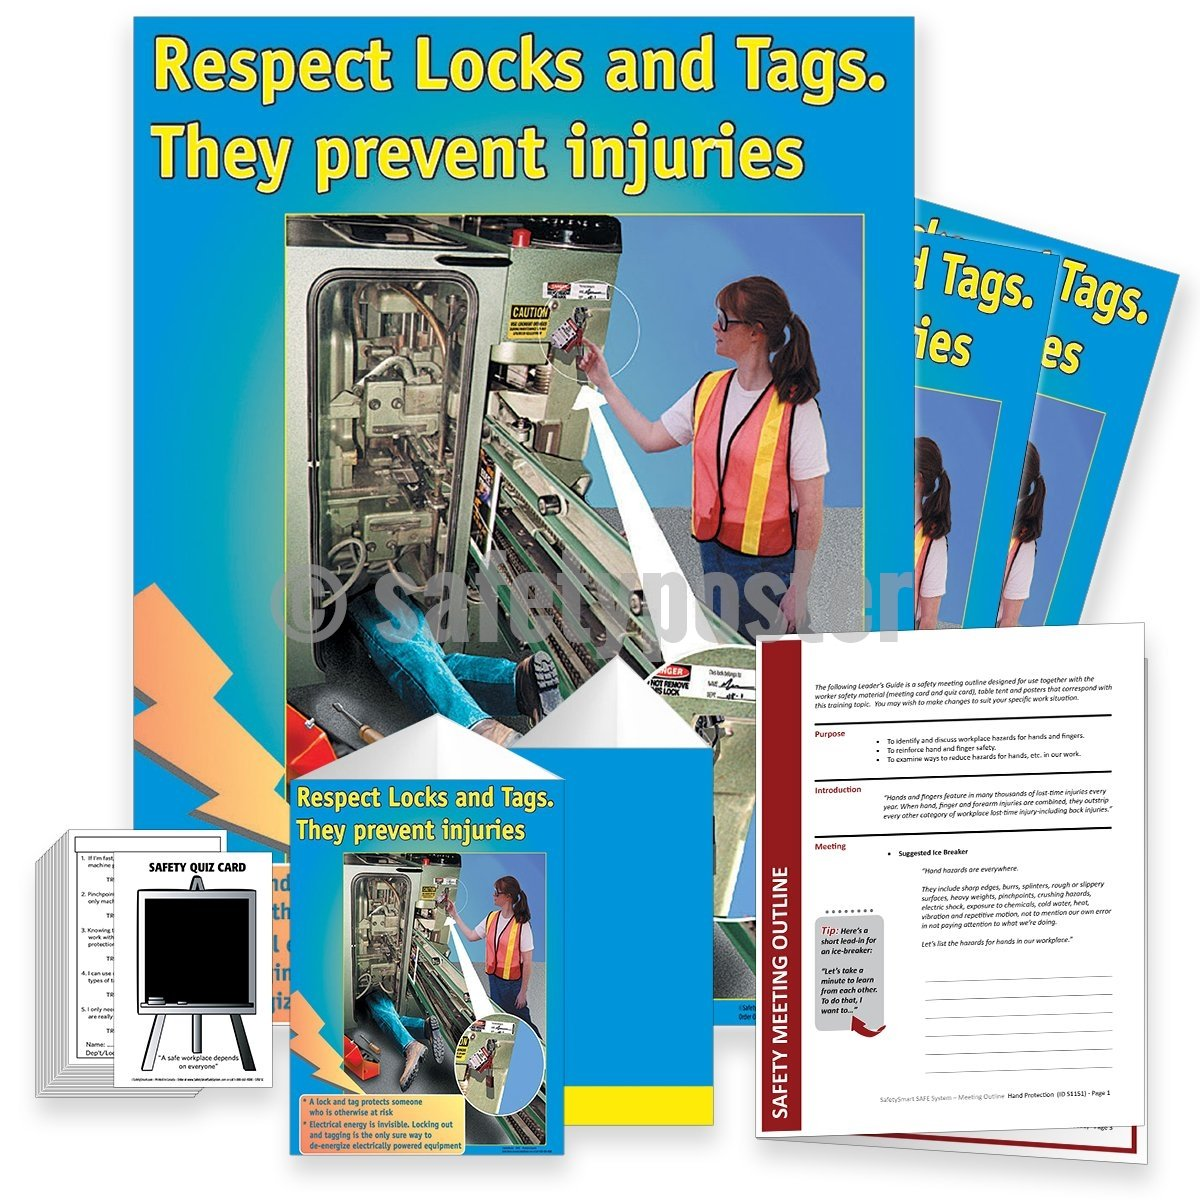 Safety Meeting Kit - Respect Locks And Tags They Prevent Injury Kits